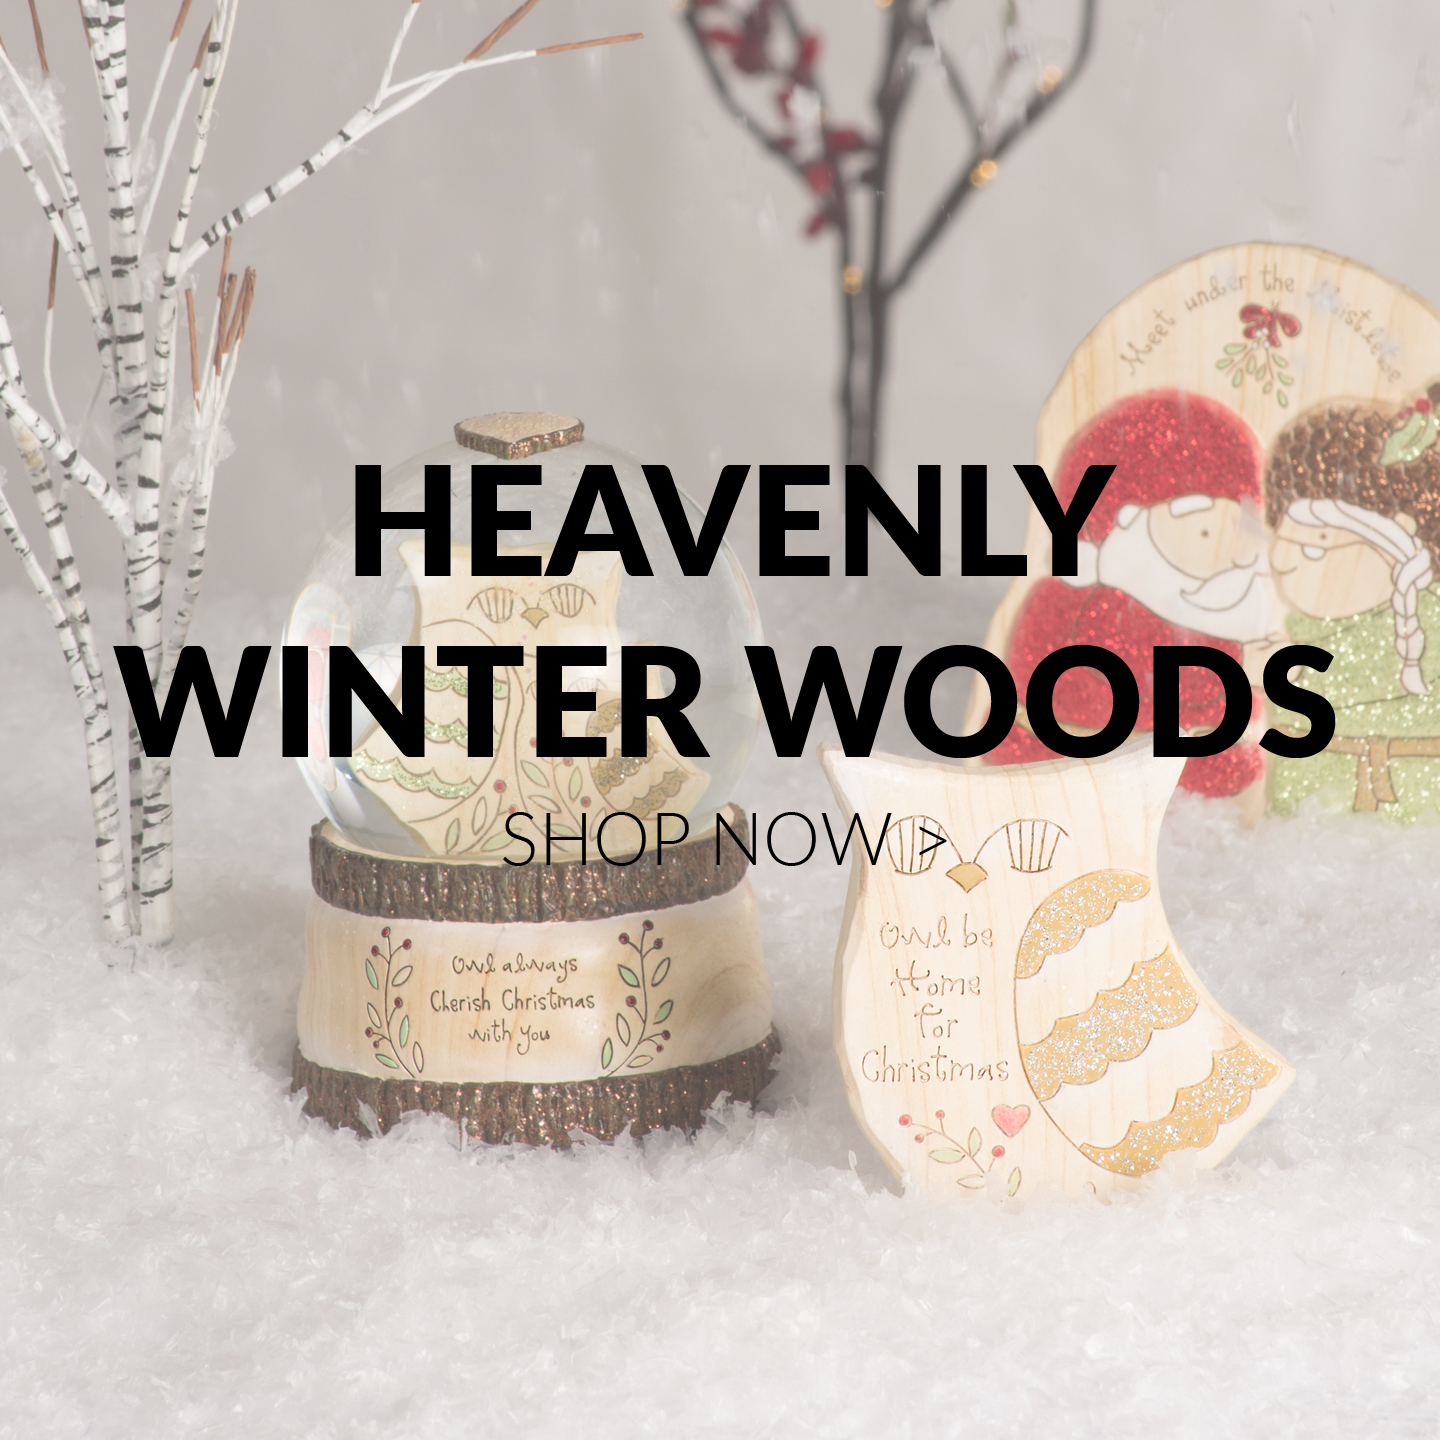 Heavenly Winter Woods